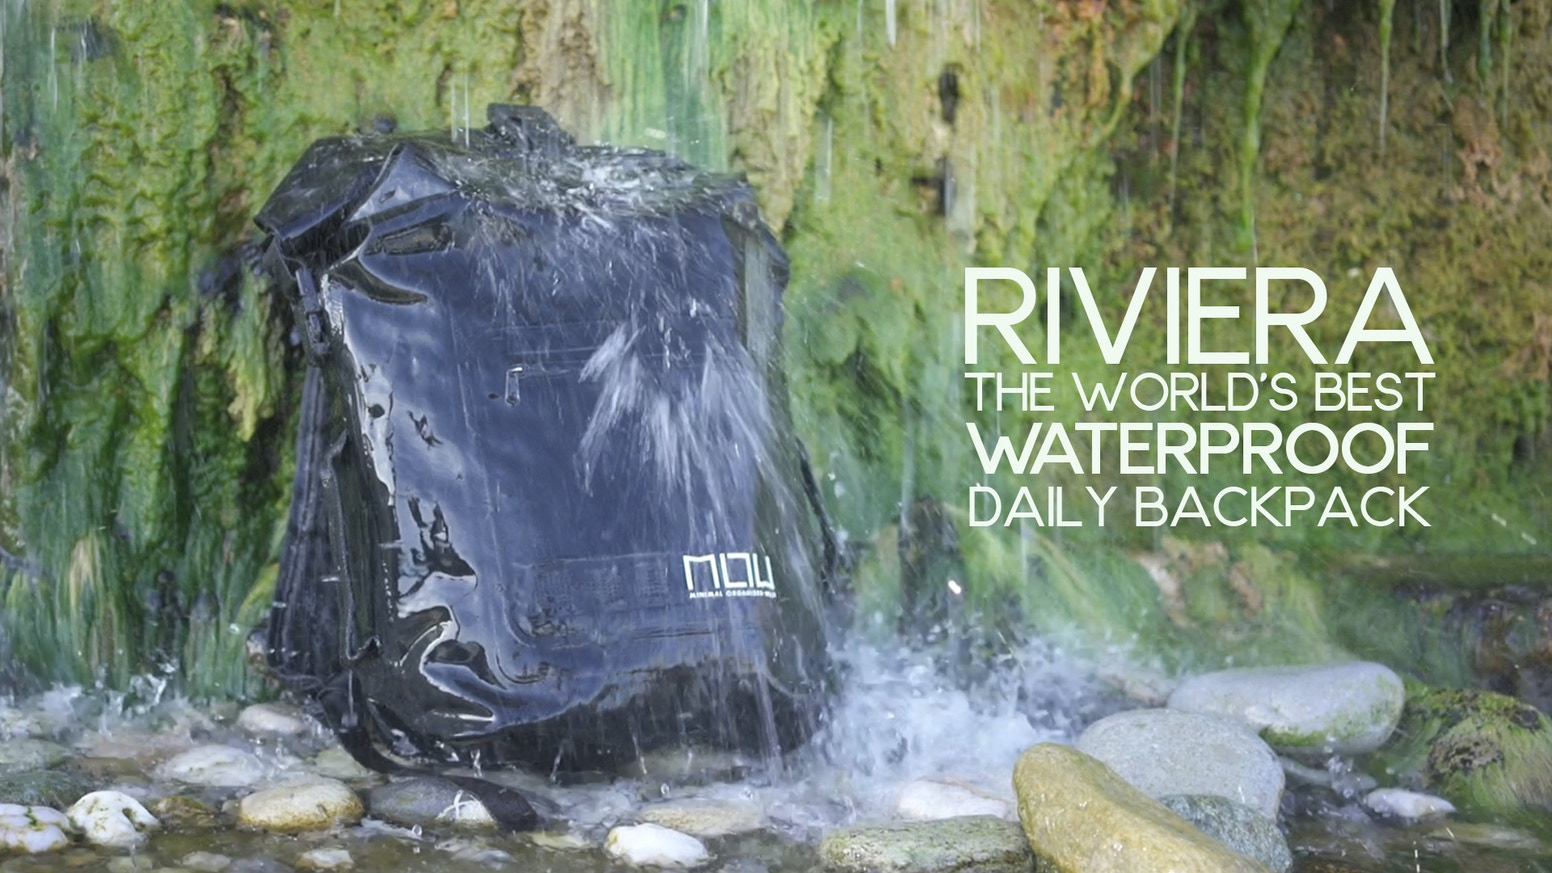 The World s Best Waterproof Daily Backpack   The Riviera. It s well-known  that circuit boards and liquids don t mix. Riviera is f040a53475